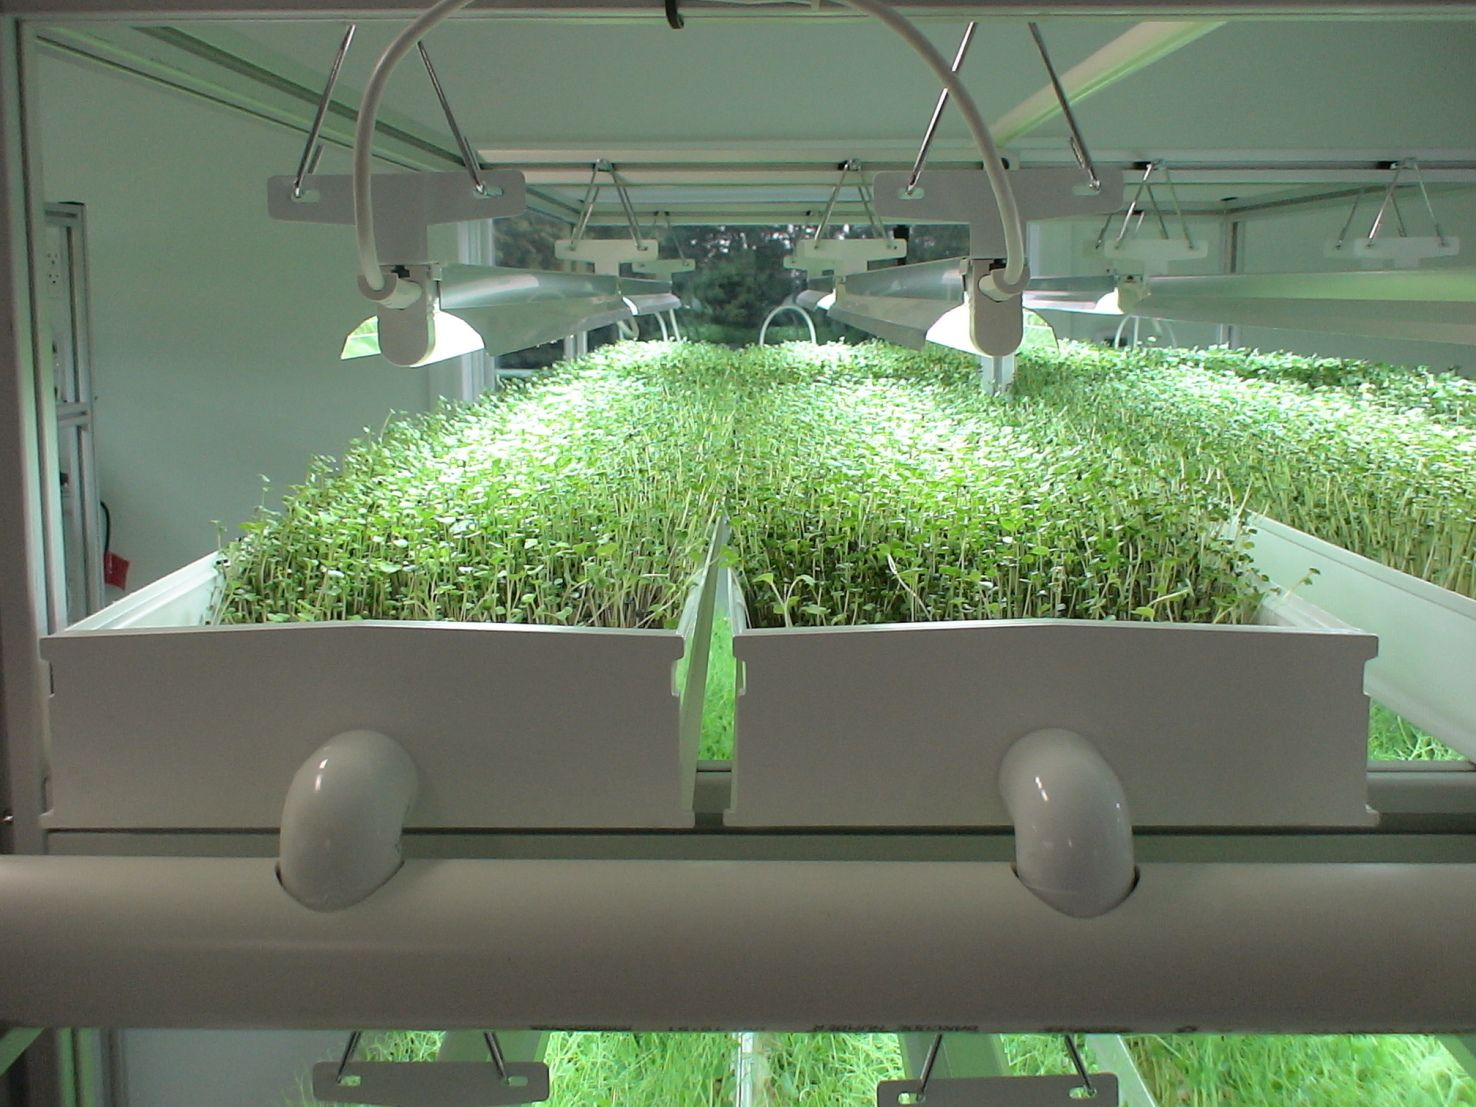 Growing microgreens in an NFT hydroponic system | E Gardens